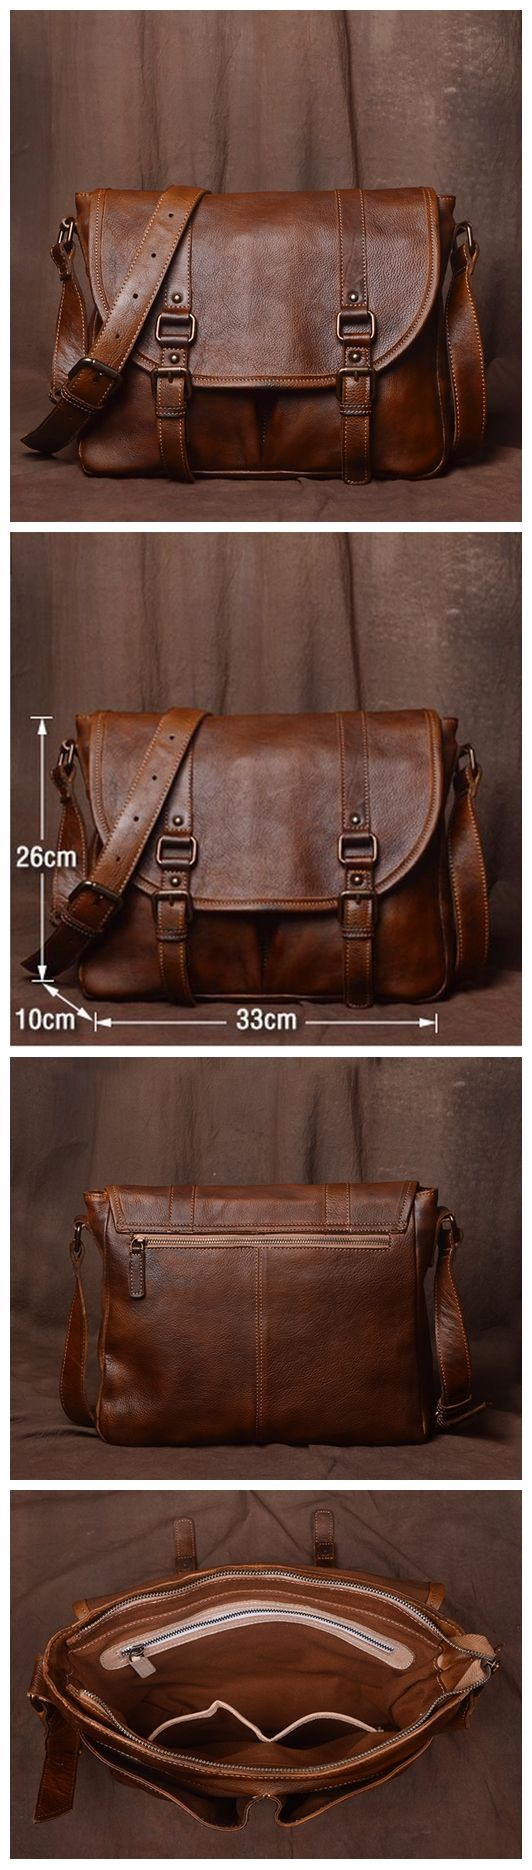 Mens Leather Bag, Leather Handmade Briefcase, Crossbody Business Bag JZ001